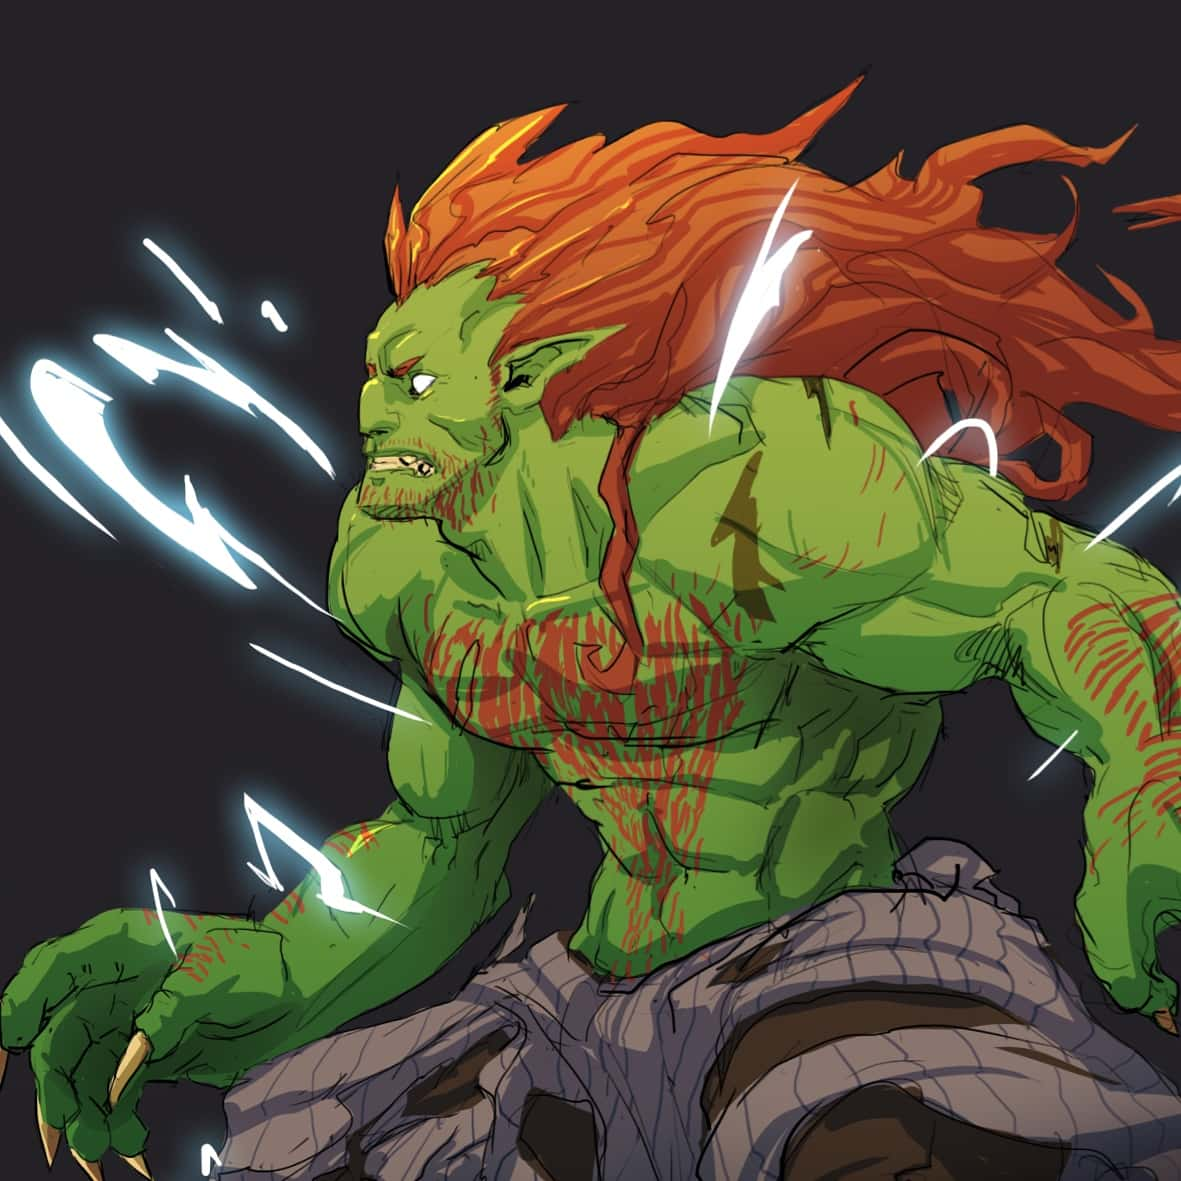 Time for a #Blanka #fanart and redesign by me. :) #conceptart #characterdesign #characterillustration #streetfighter #gameartpic.twitter.com/4TFCfegFCn